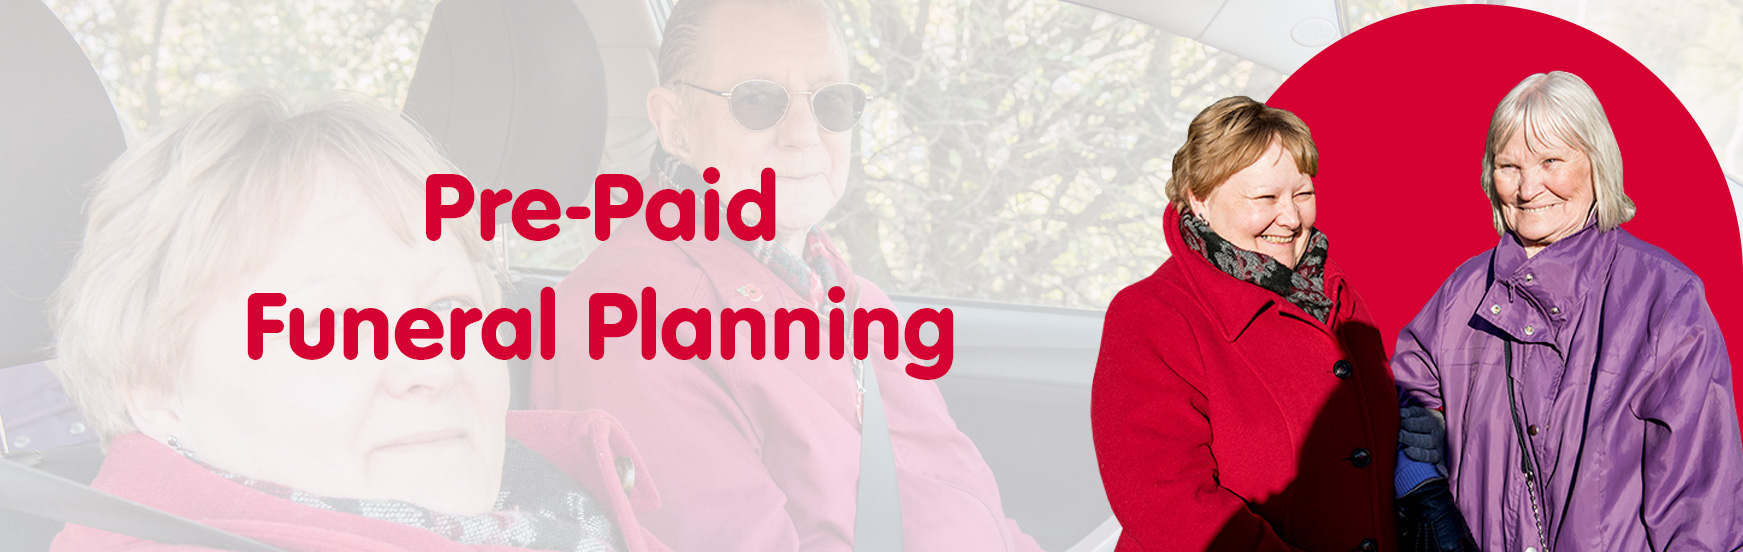 age pre paid funeral planning